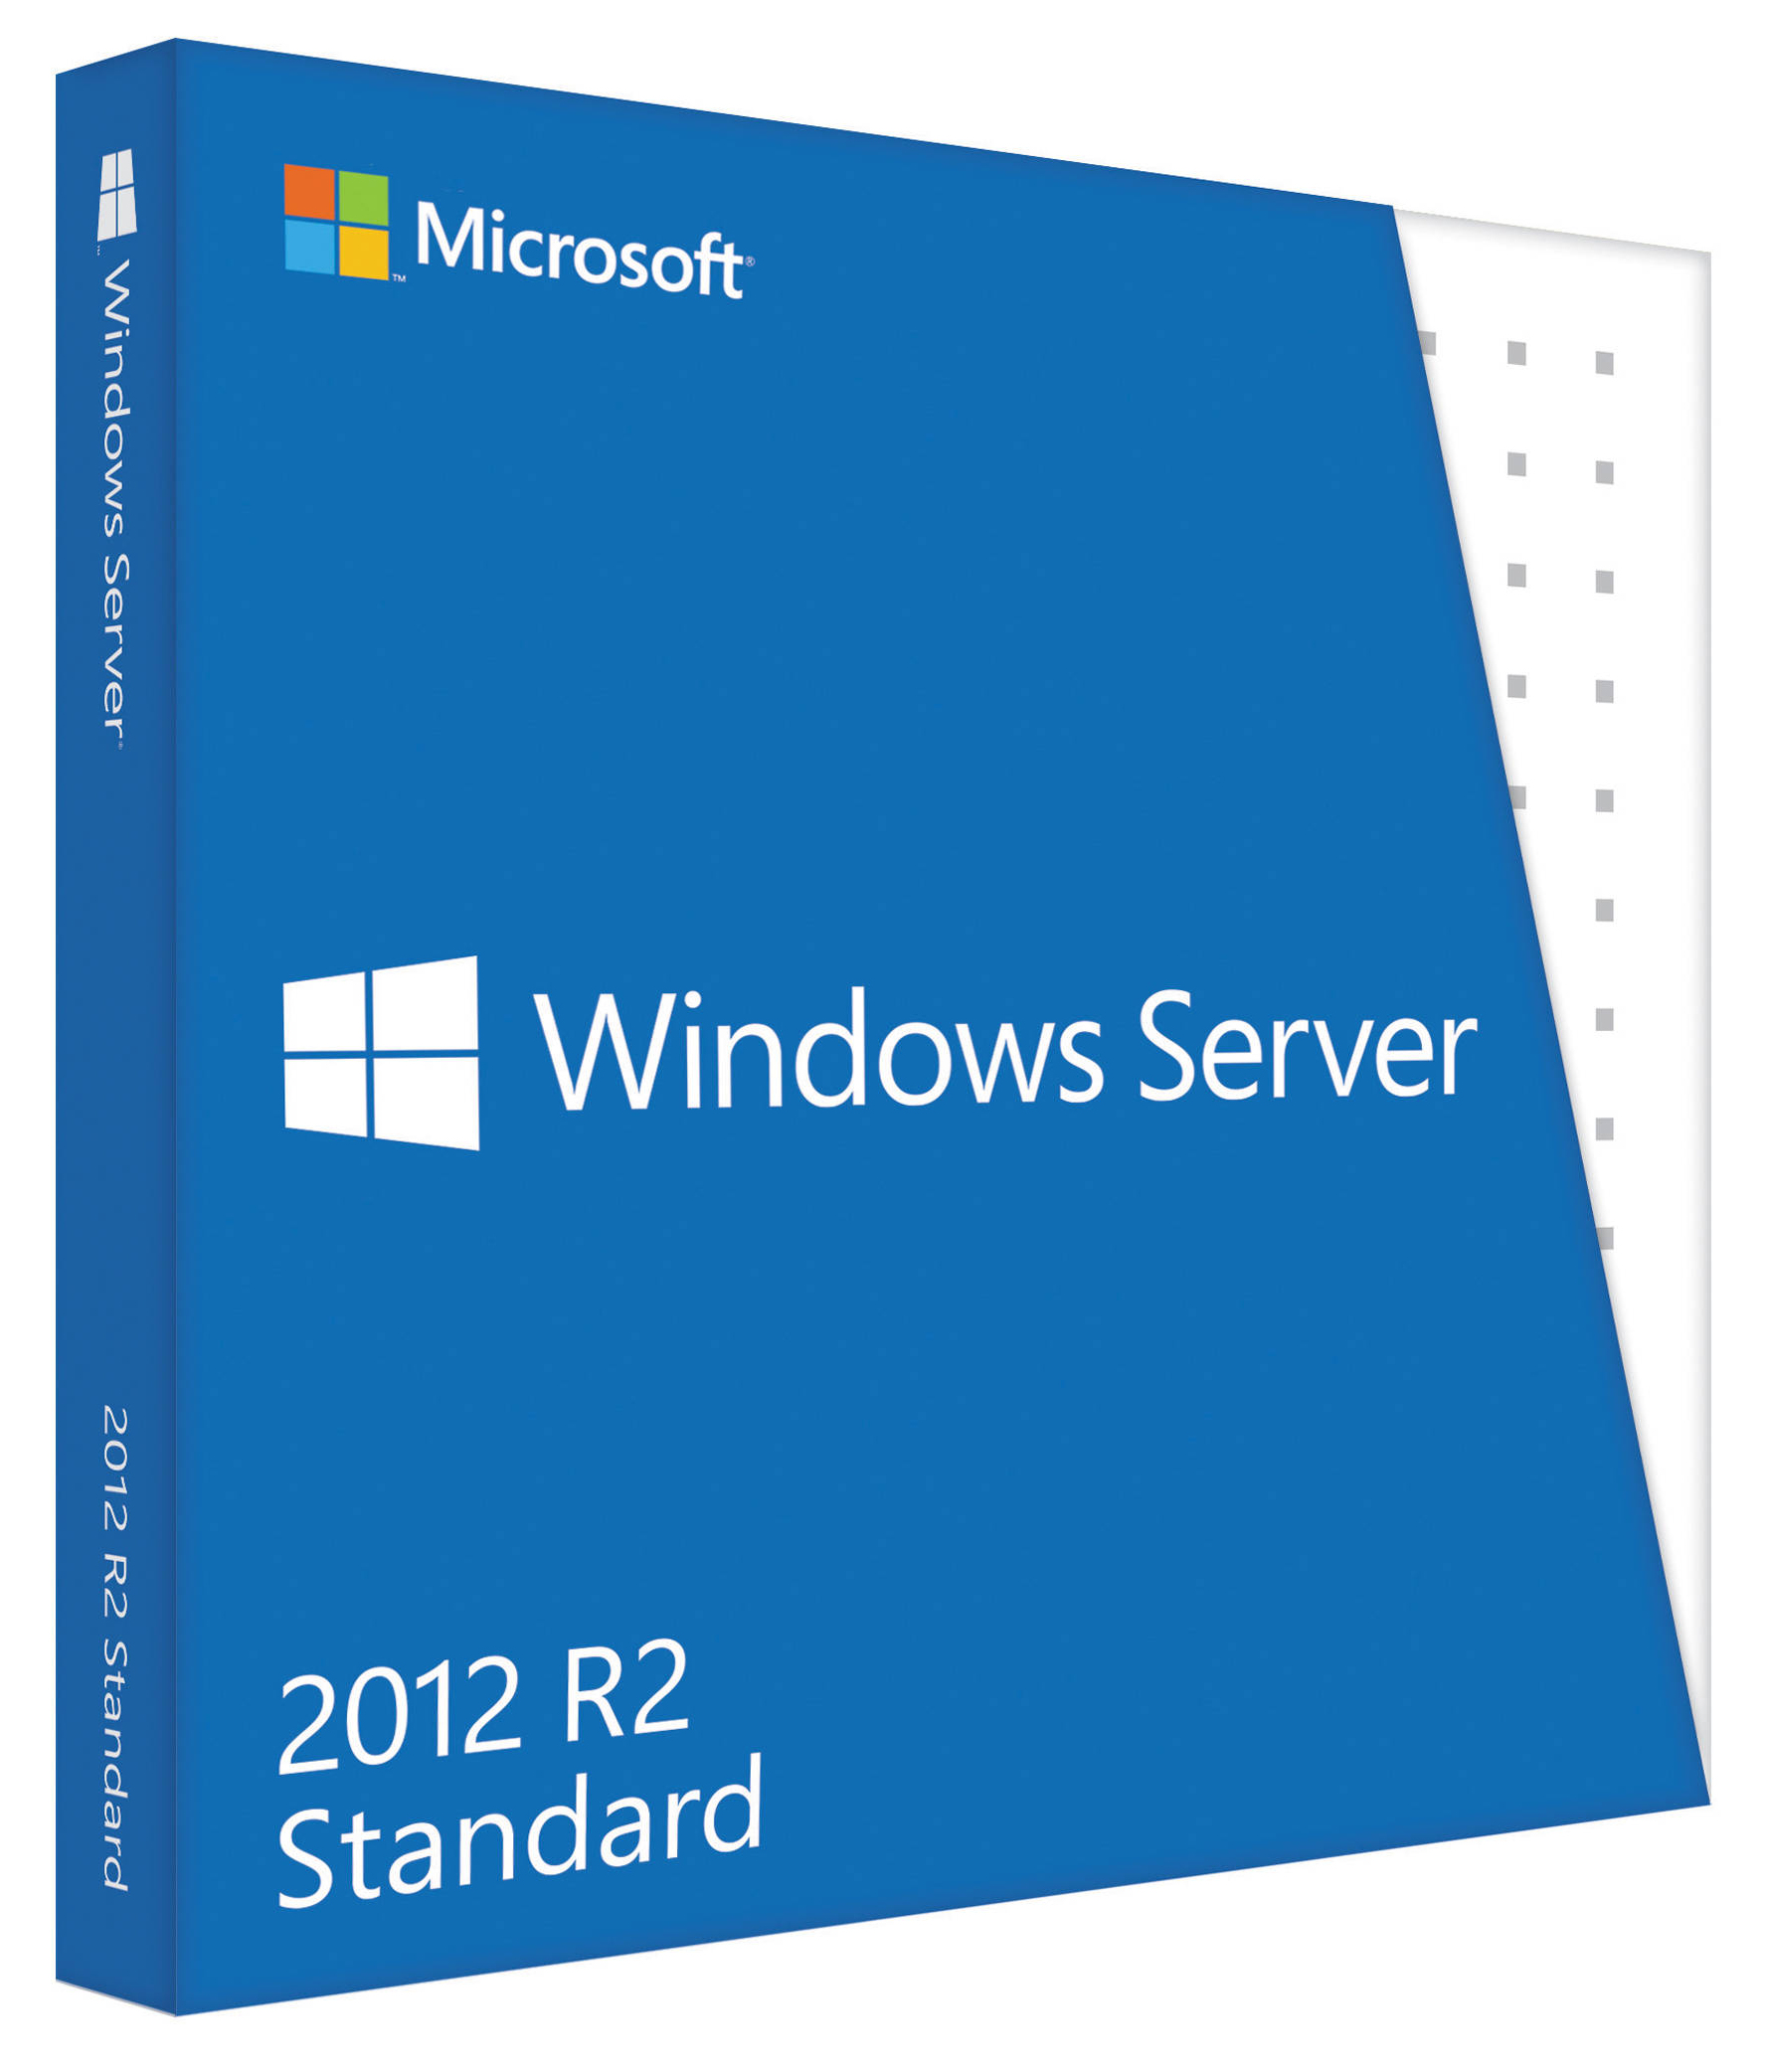 Microsoft Microsoft Windows Server 2012 R2 Standard - Licence - 1 Server (up To 2 Cpu/2 Voses) - Oem - Dvd - 64-bit - English P73-06165 - xep01